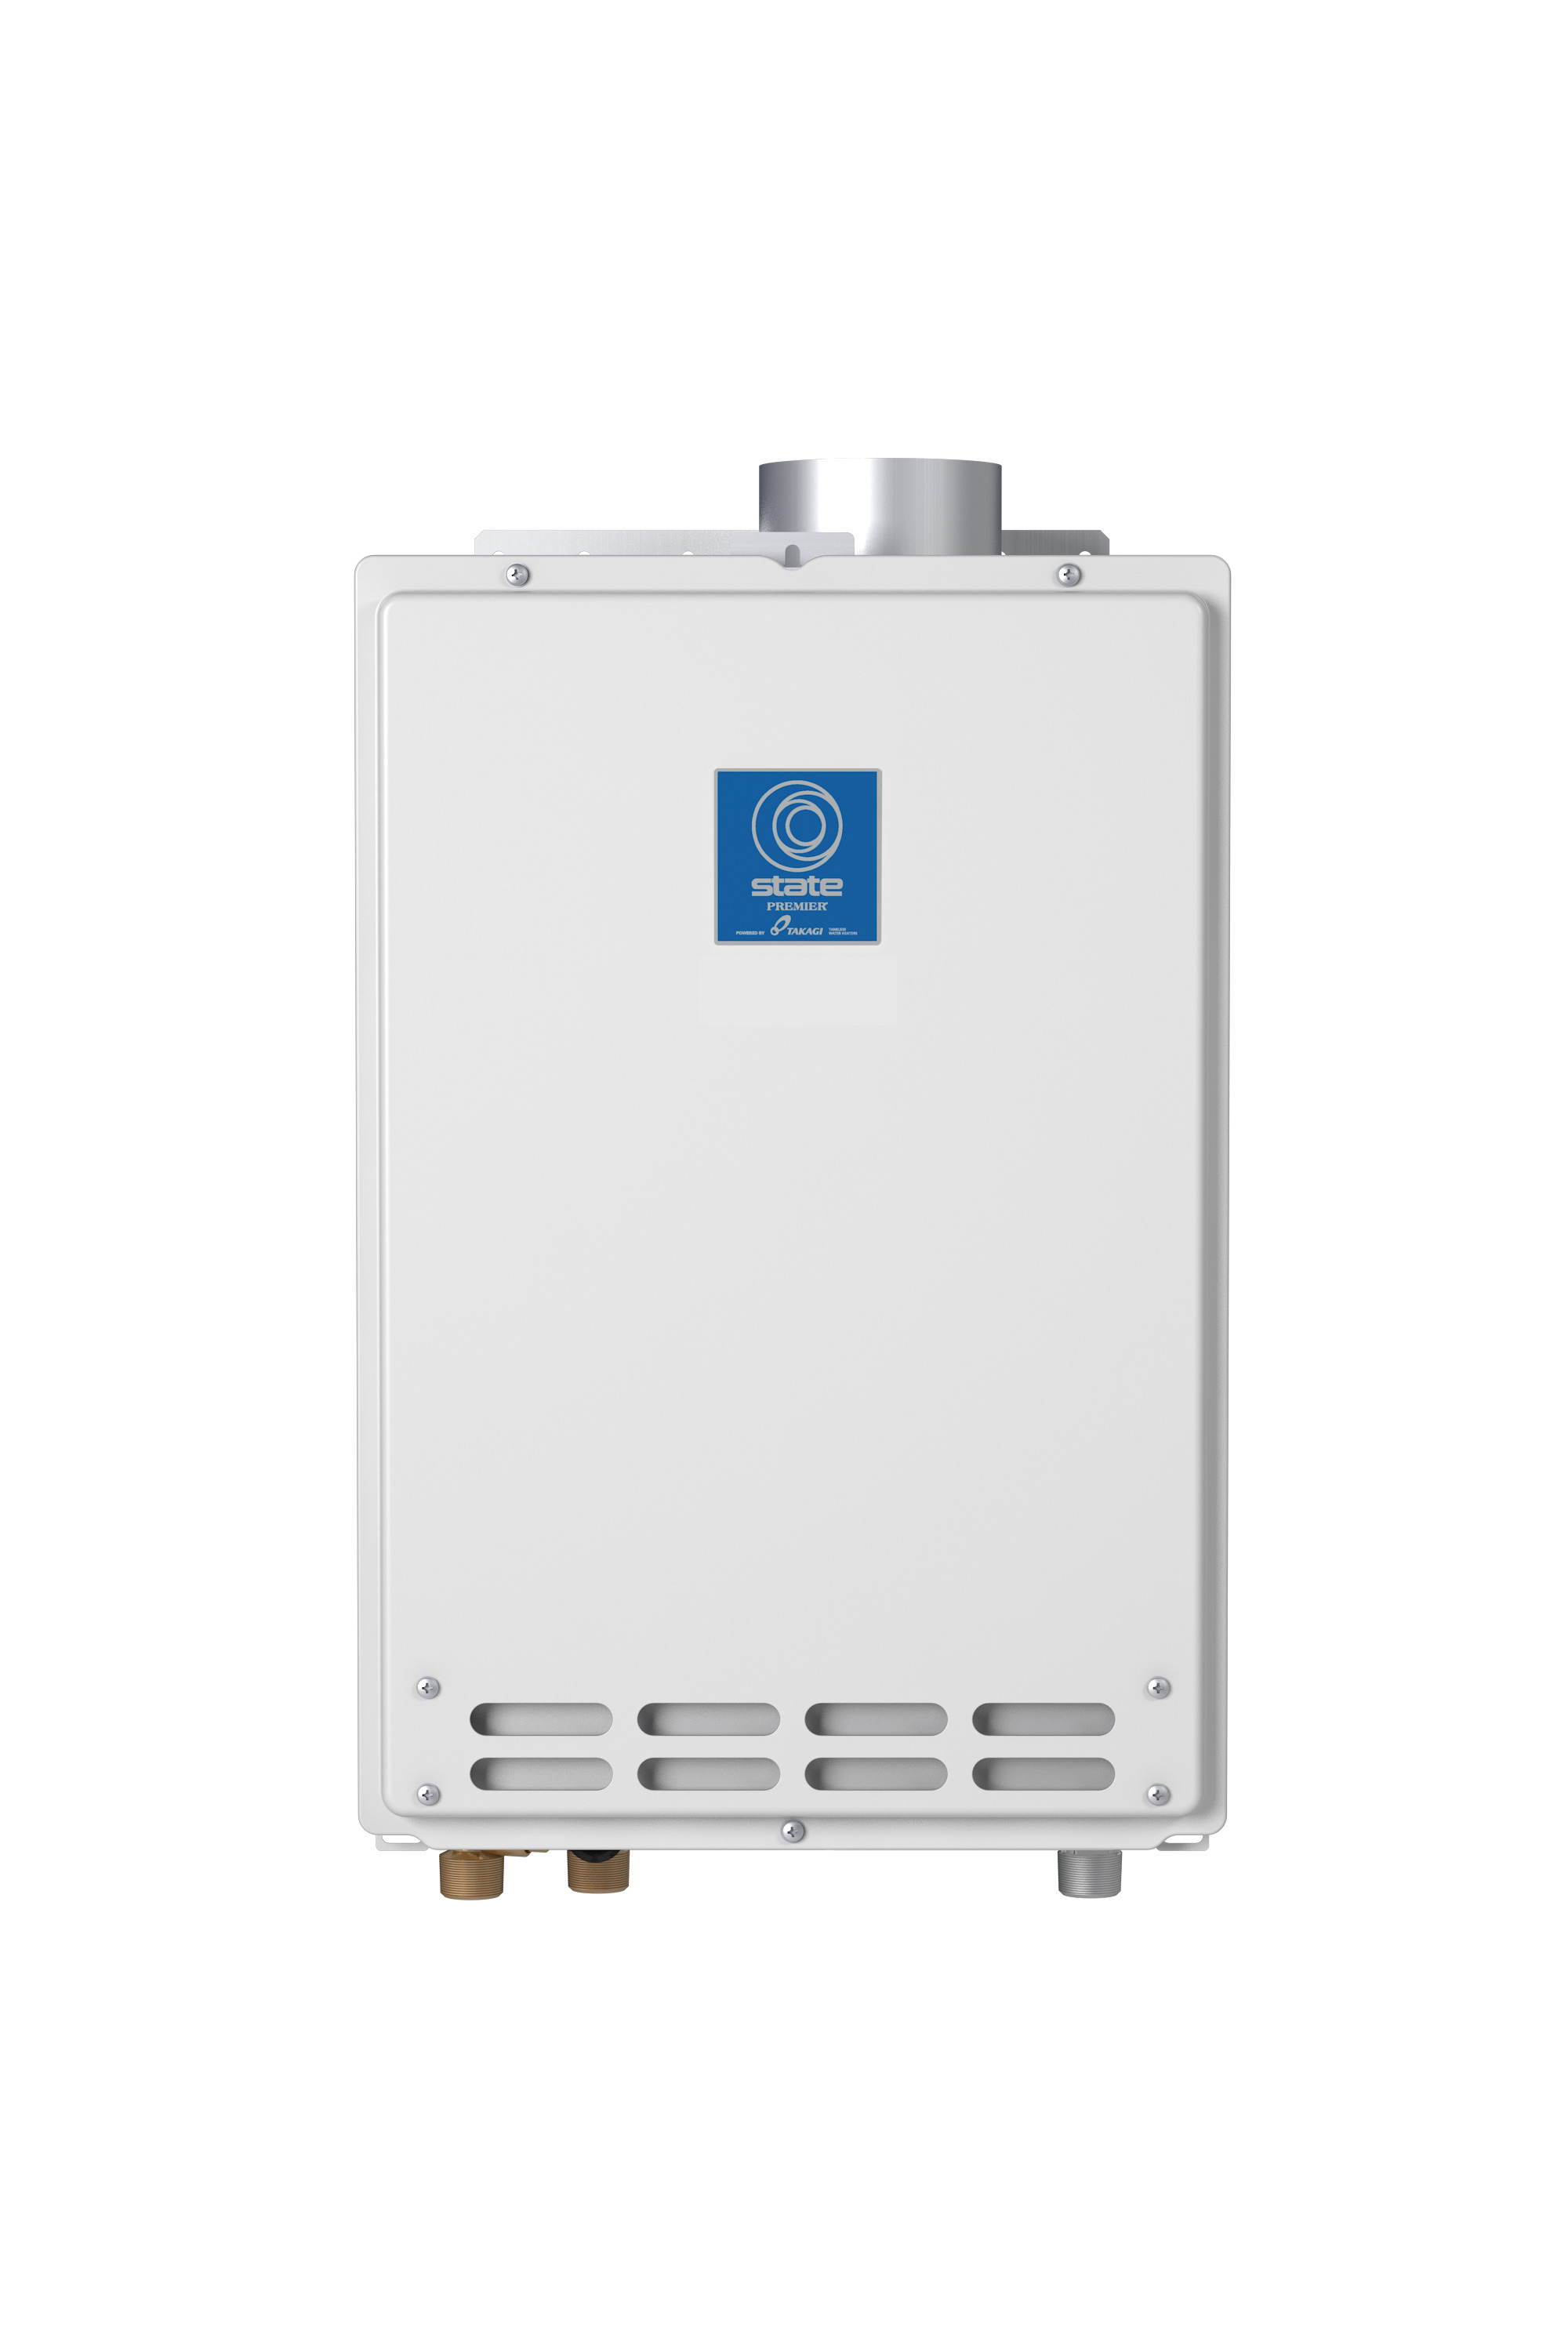 STATE GTS-110-NI NON-CONDENSING INDOOR